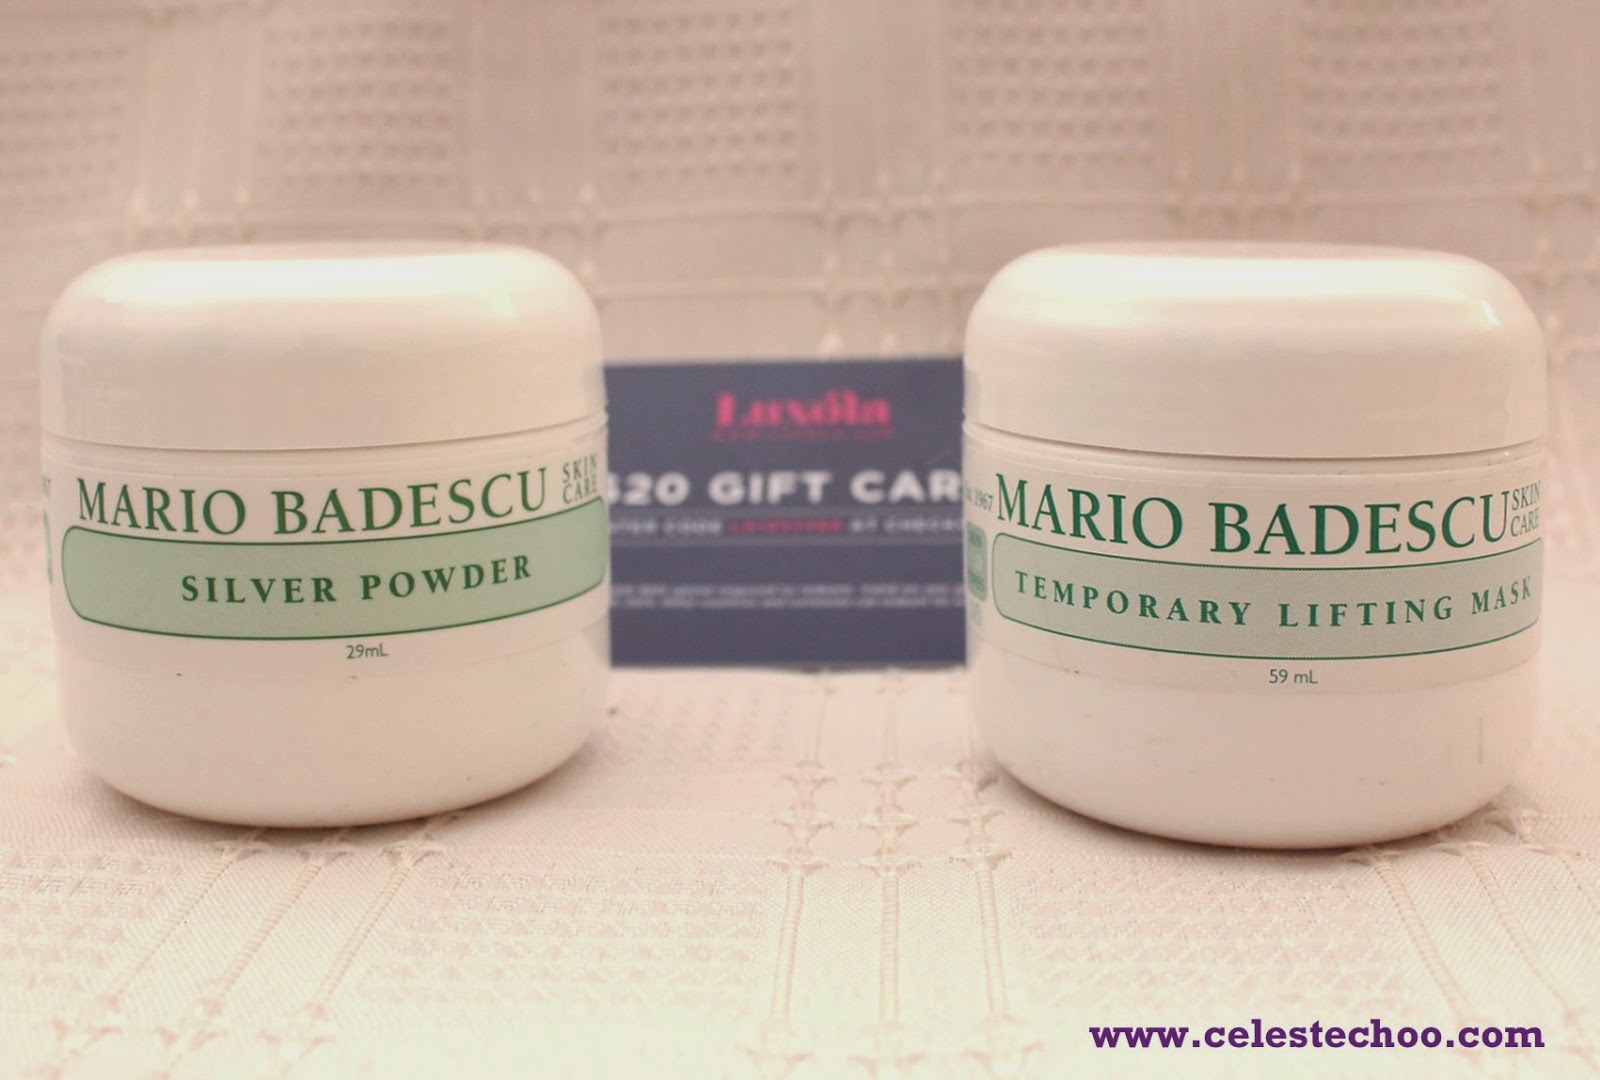 mario_badescu_beauty_skincare_powder_lifting_mask_price_luxola